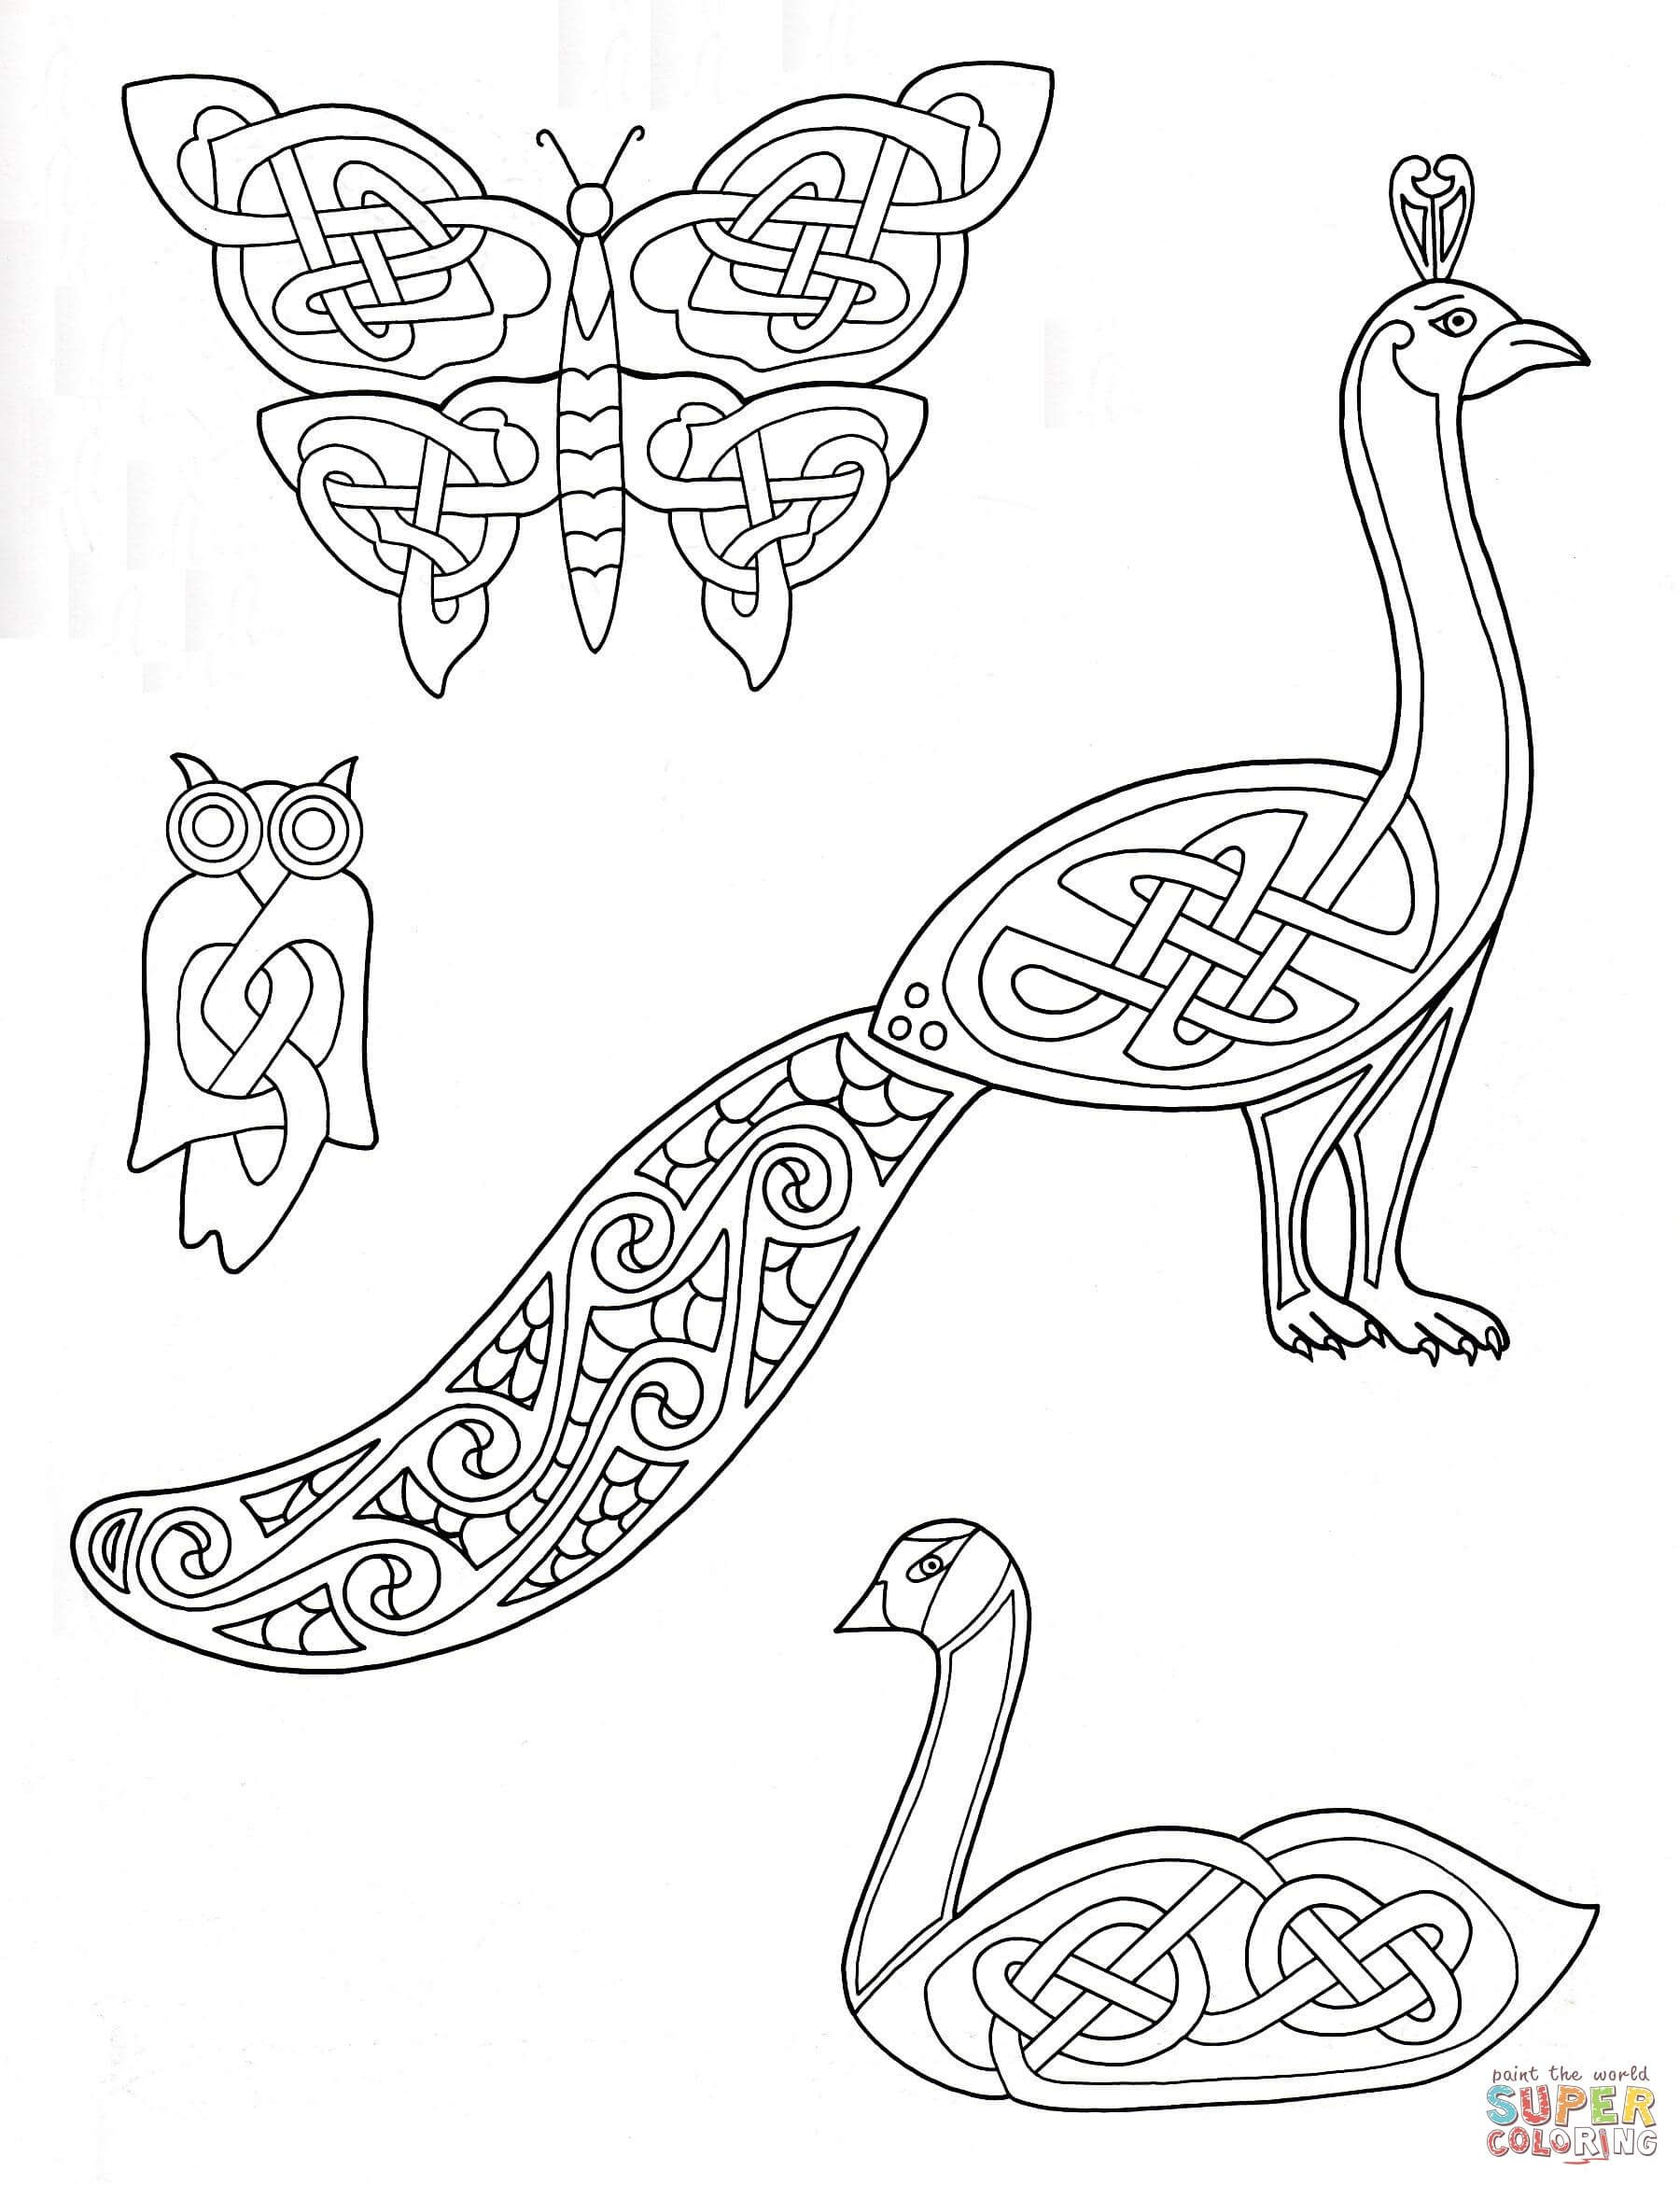 Celtic Animals Designs Coloring Page From Art Category Select 27115 Printable Crafts Of Cartoons Nature Bible And Many More